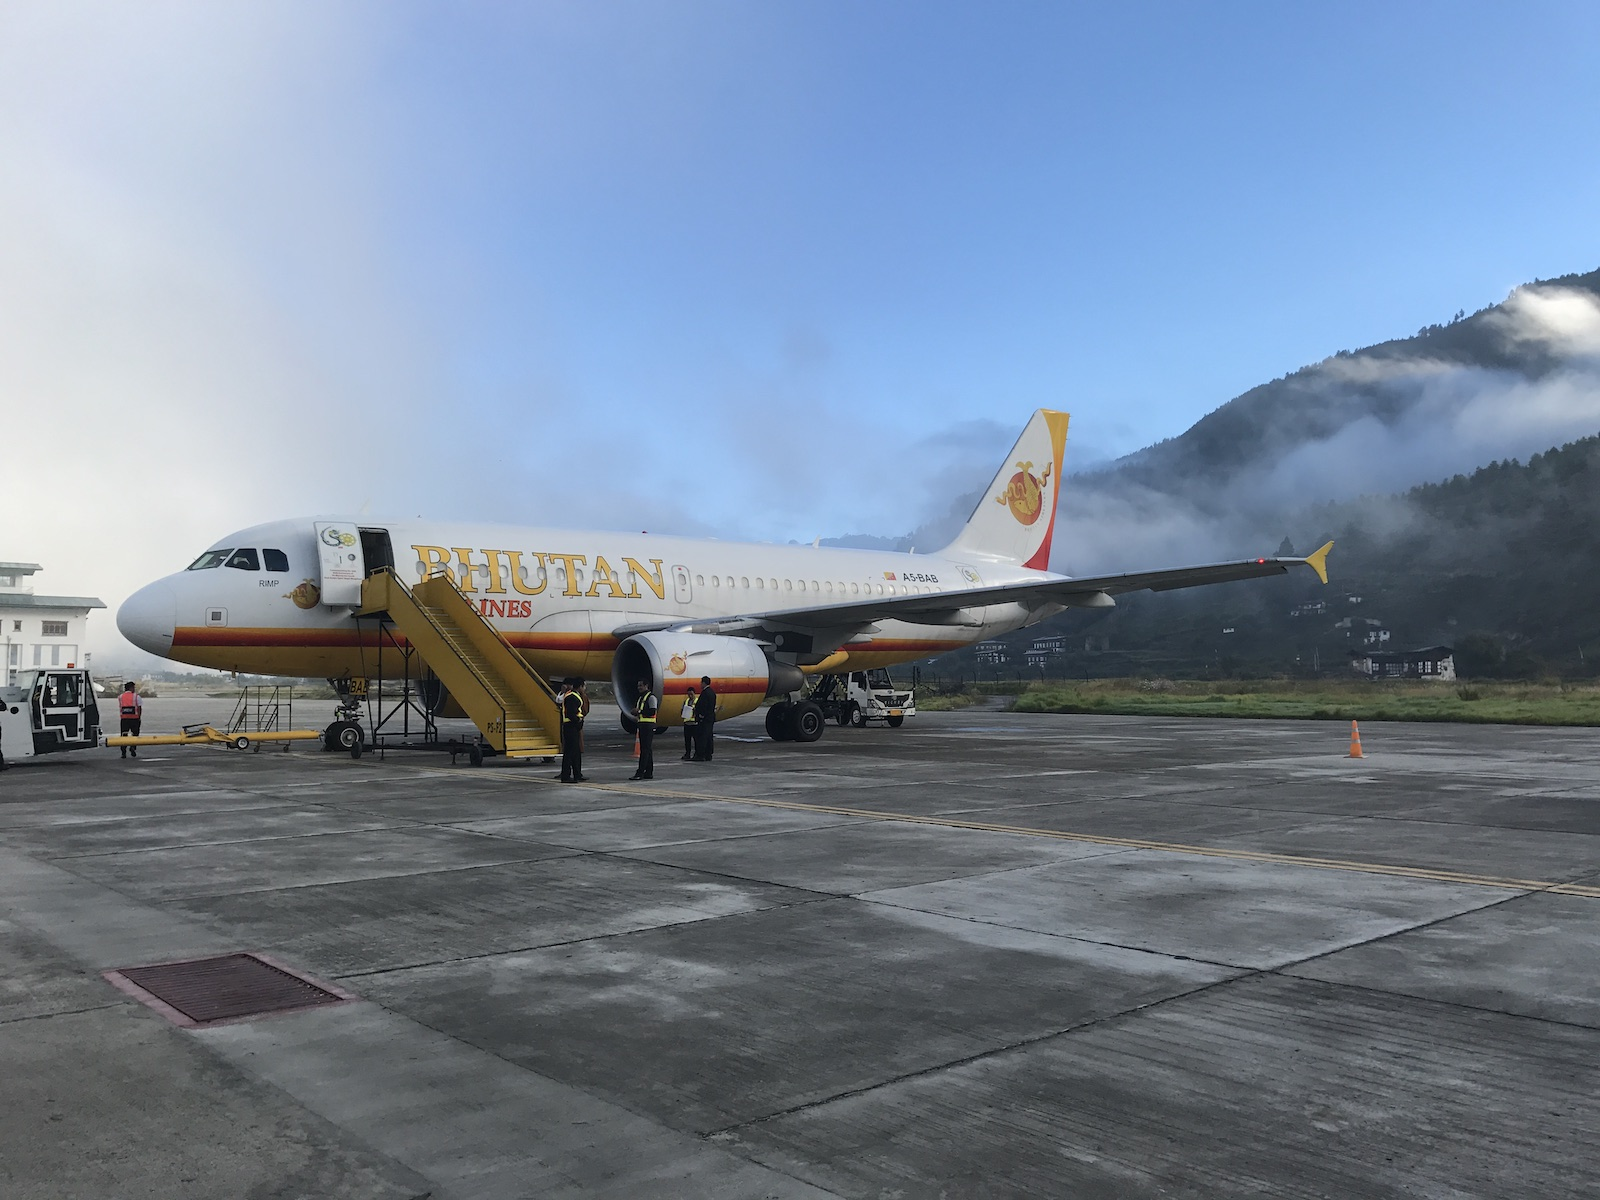 Boarding Bhutan Airlines flight